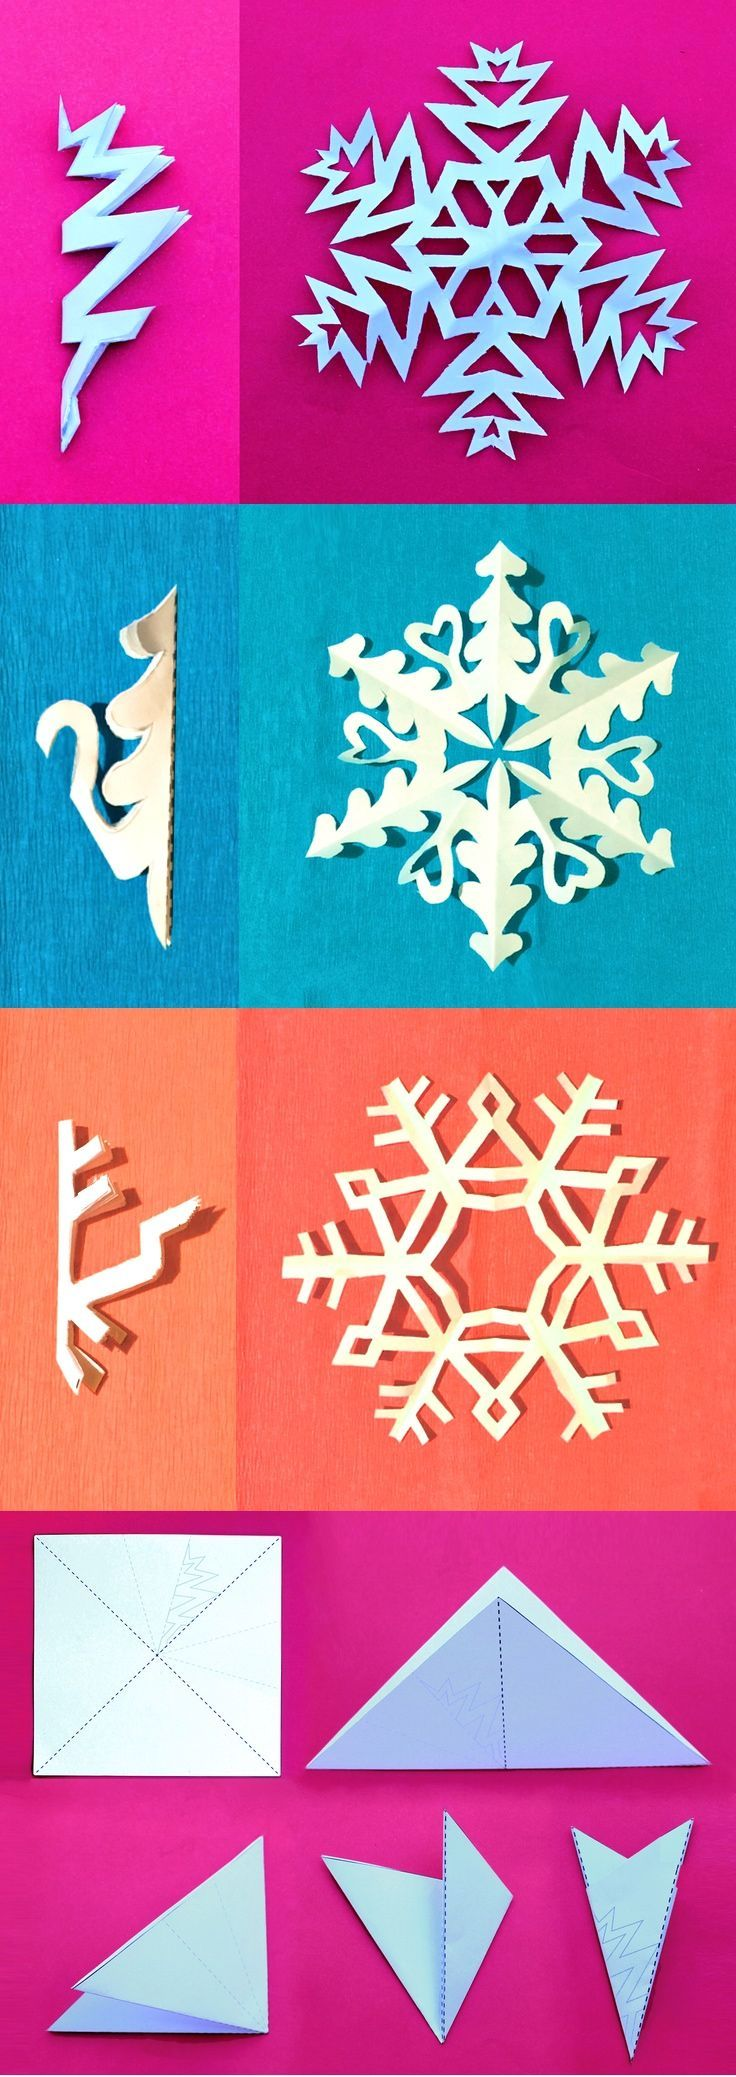 3022 best appliqu images on pinterest quilting tutorials print festive holiday craft worksheets fun printable kids activity pronofoot35fo Choice Image